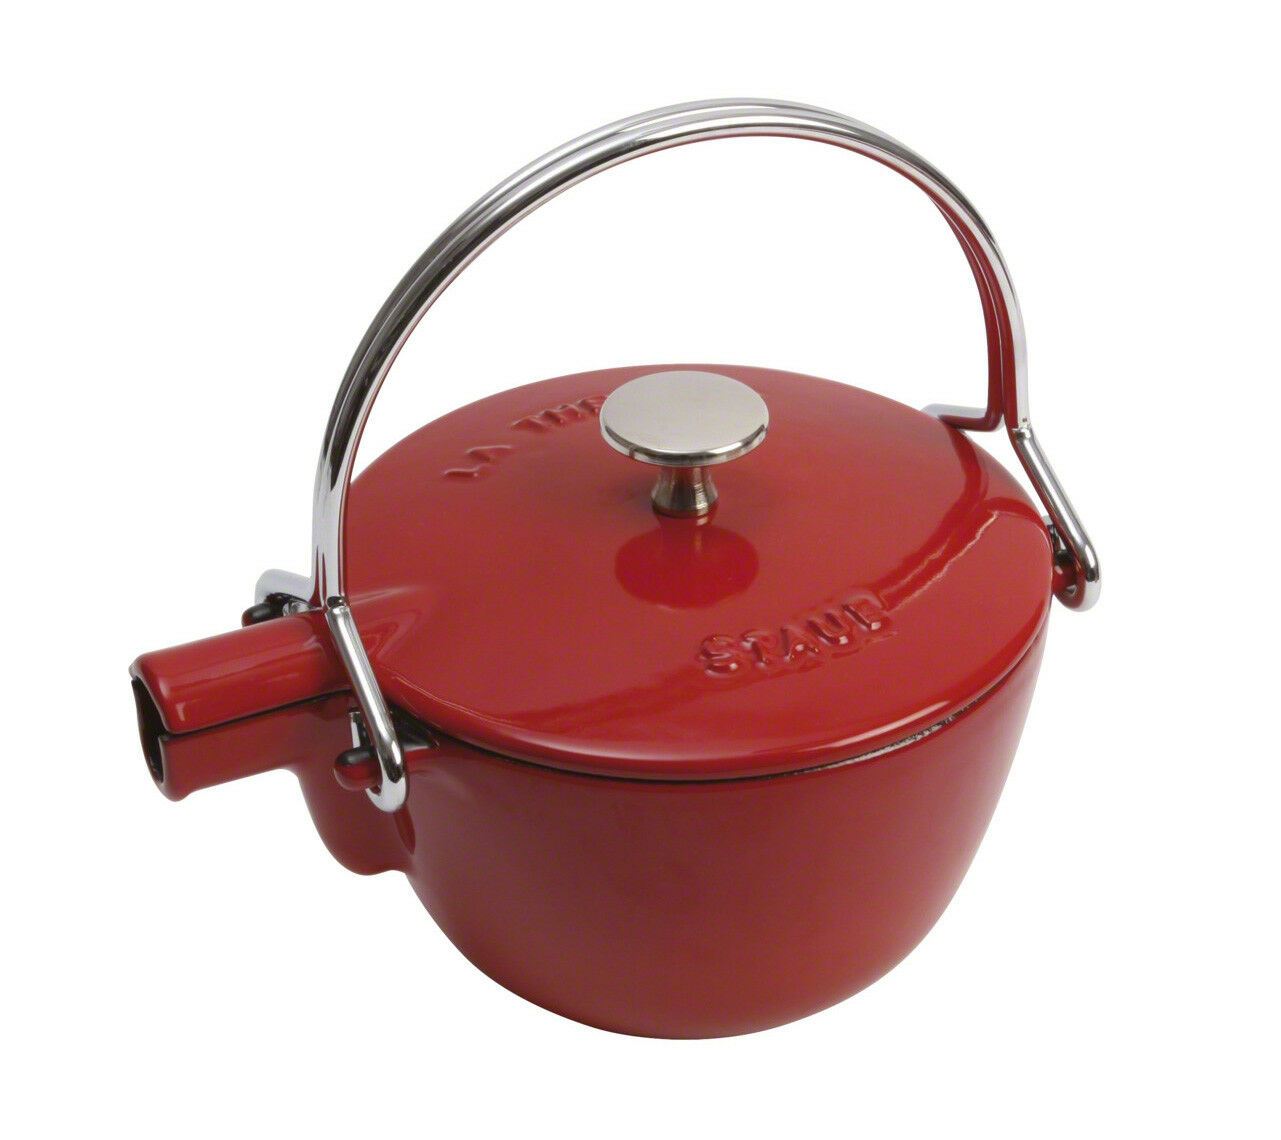 Staub Kettle Round Cherry 16,5 cm Induction Suitable Water Heater Teapot